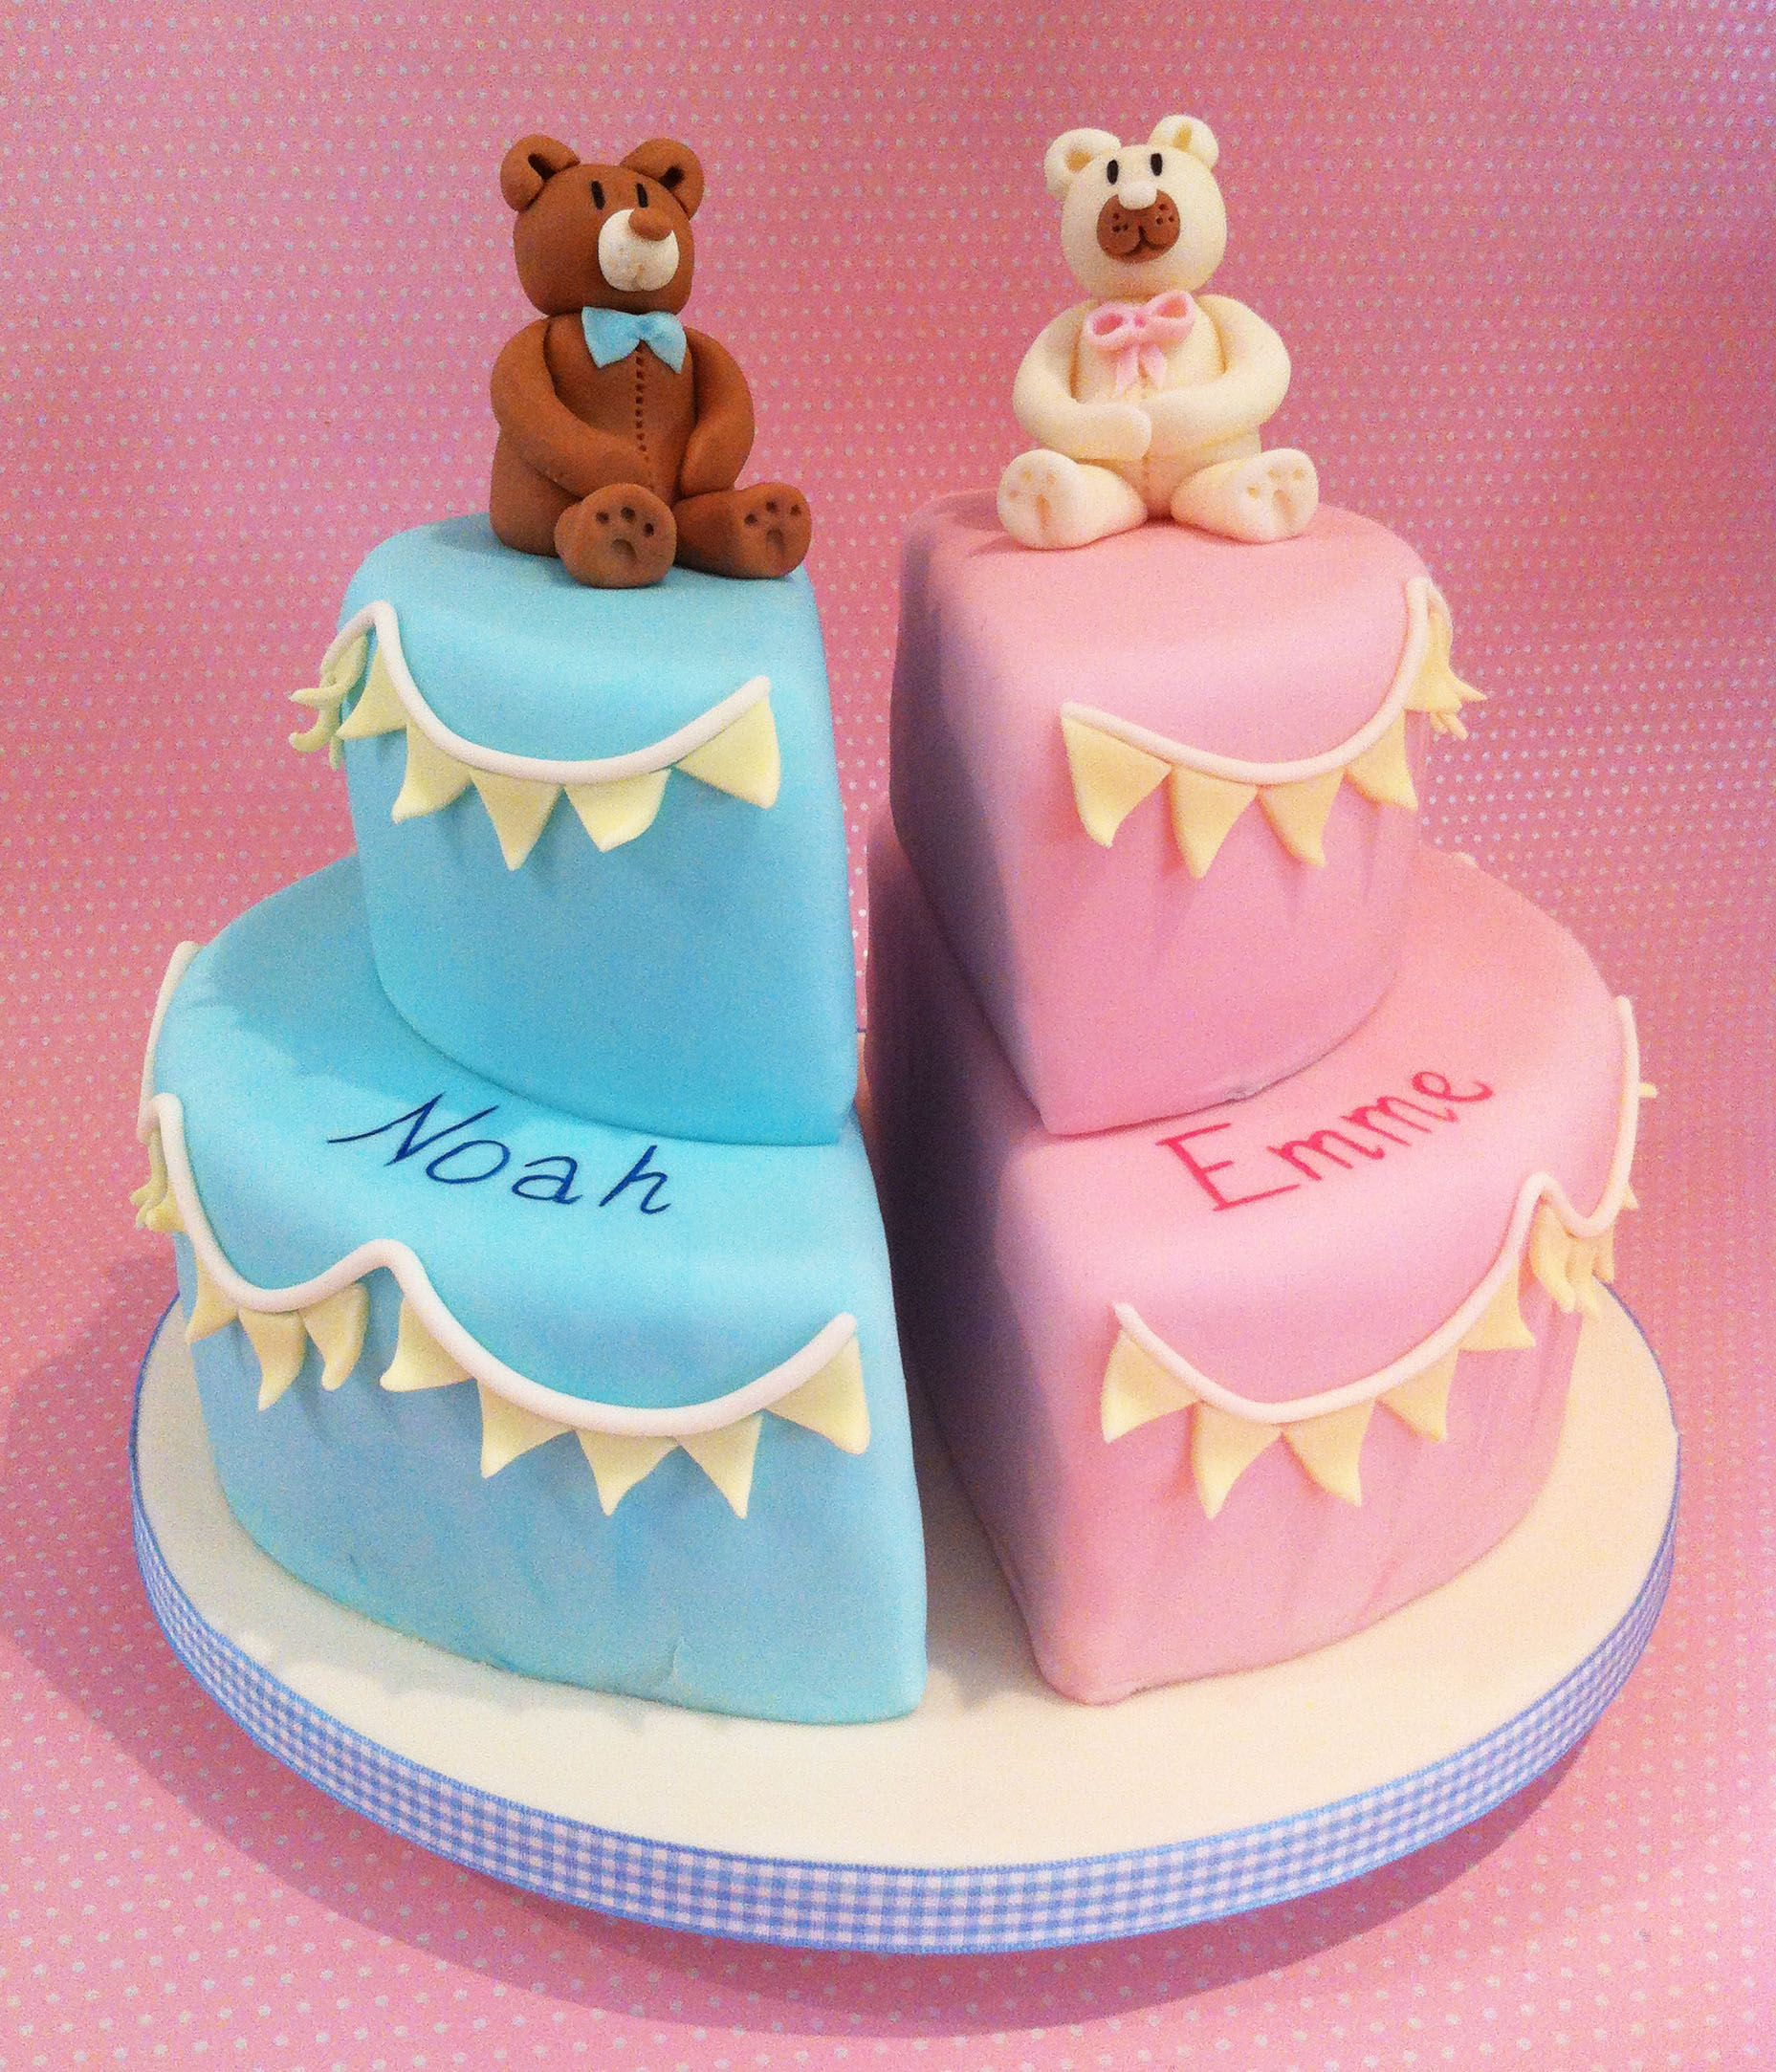 Cake decorating solutions tin hire